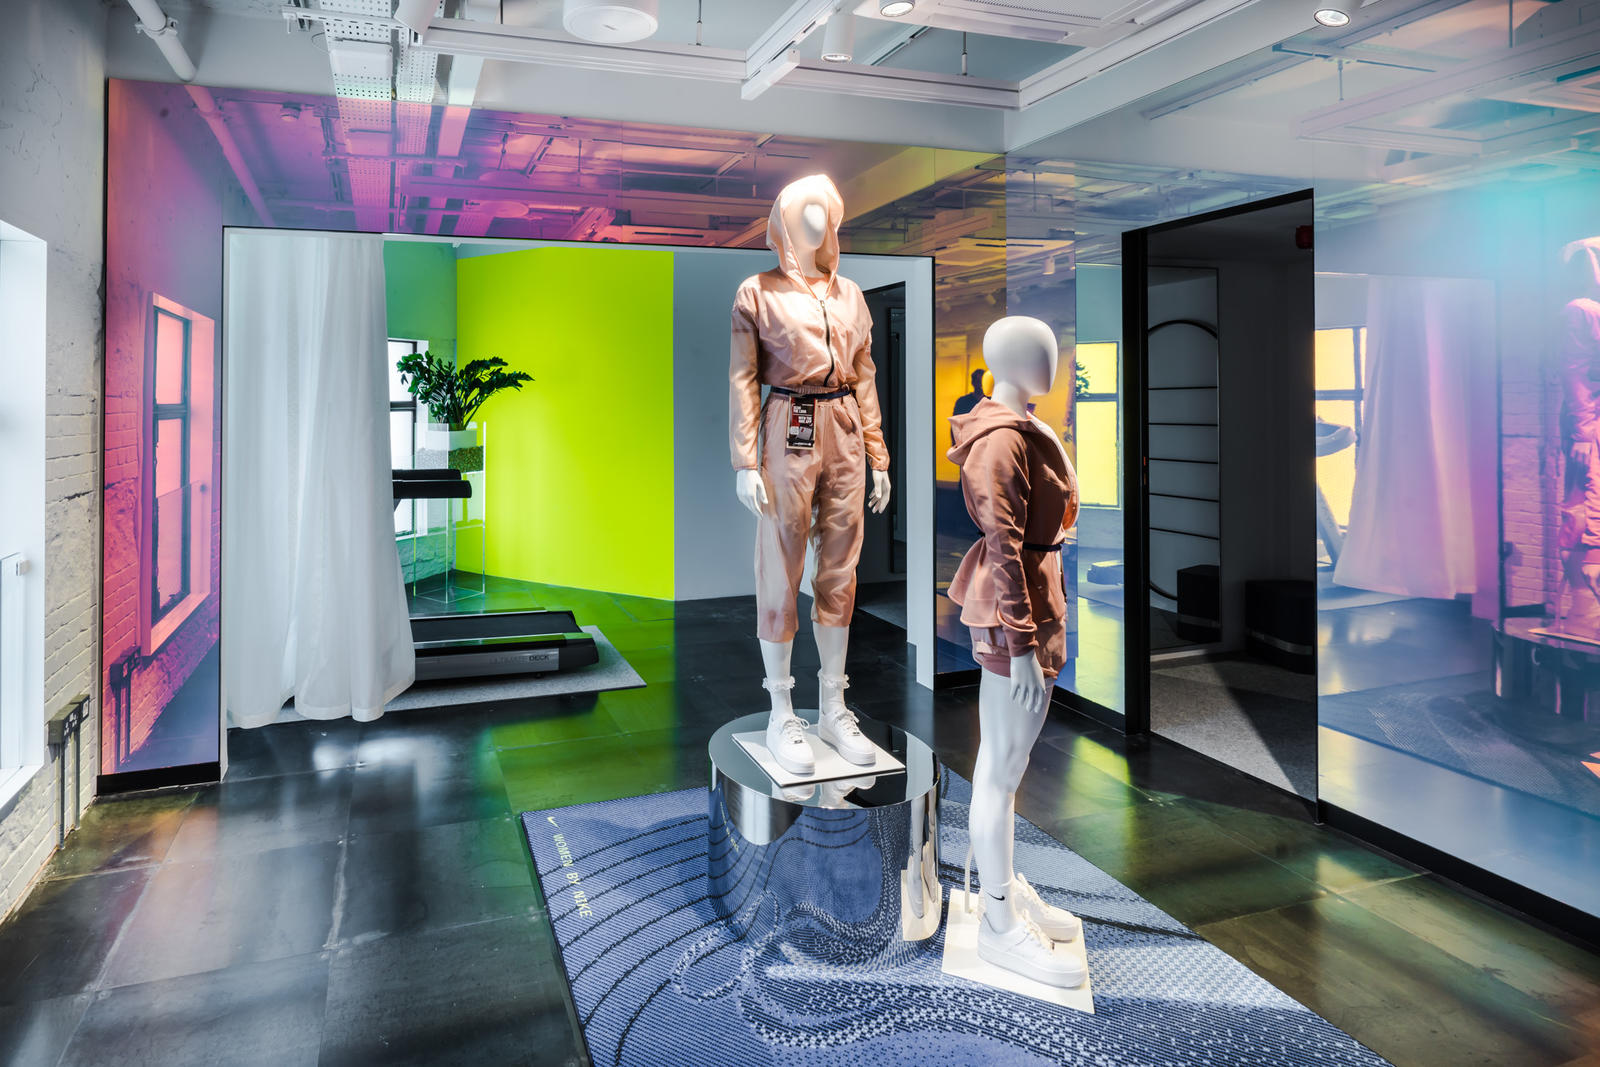 Holographic fitting rooms for a futuristic experience